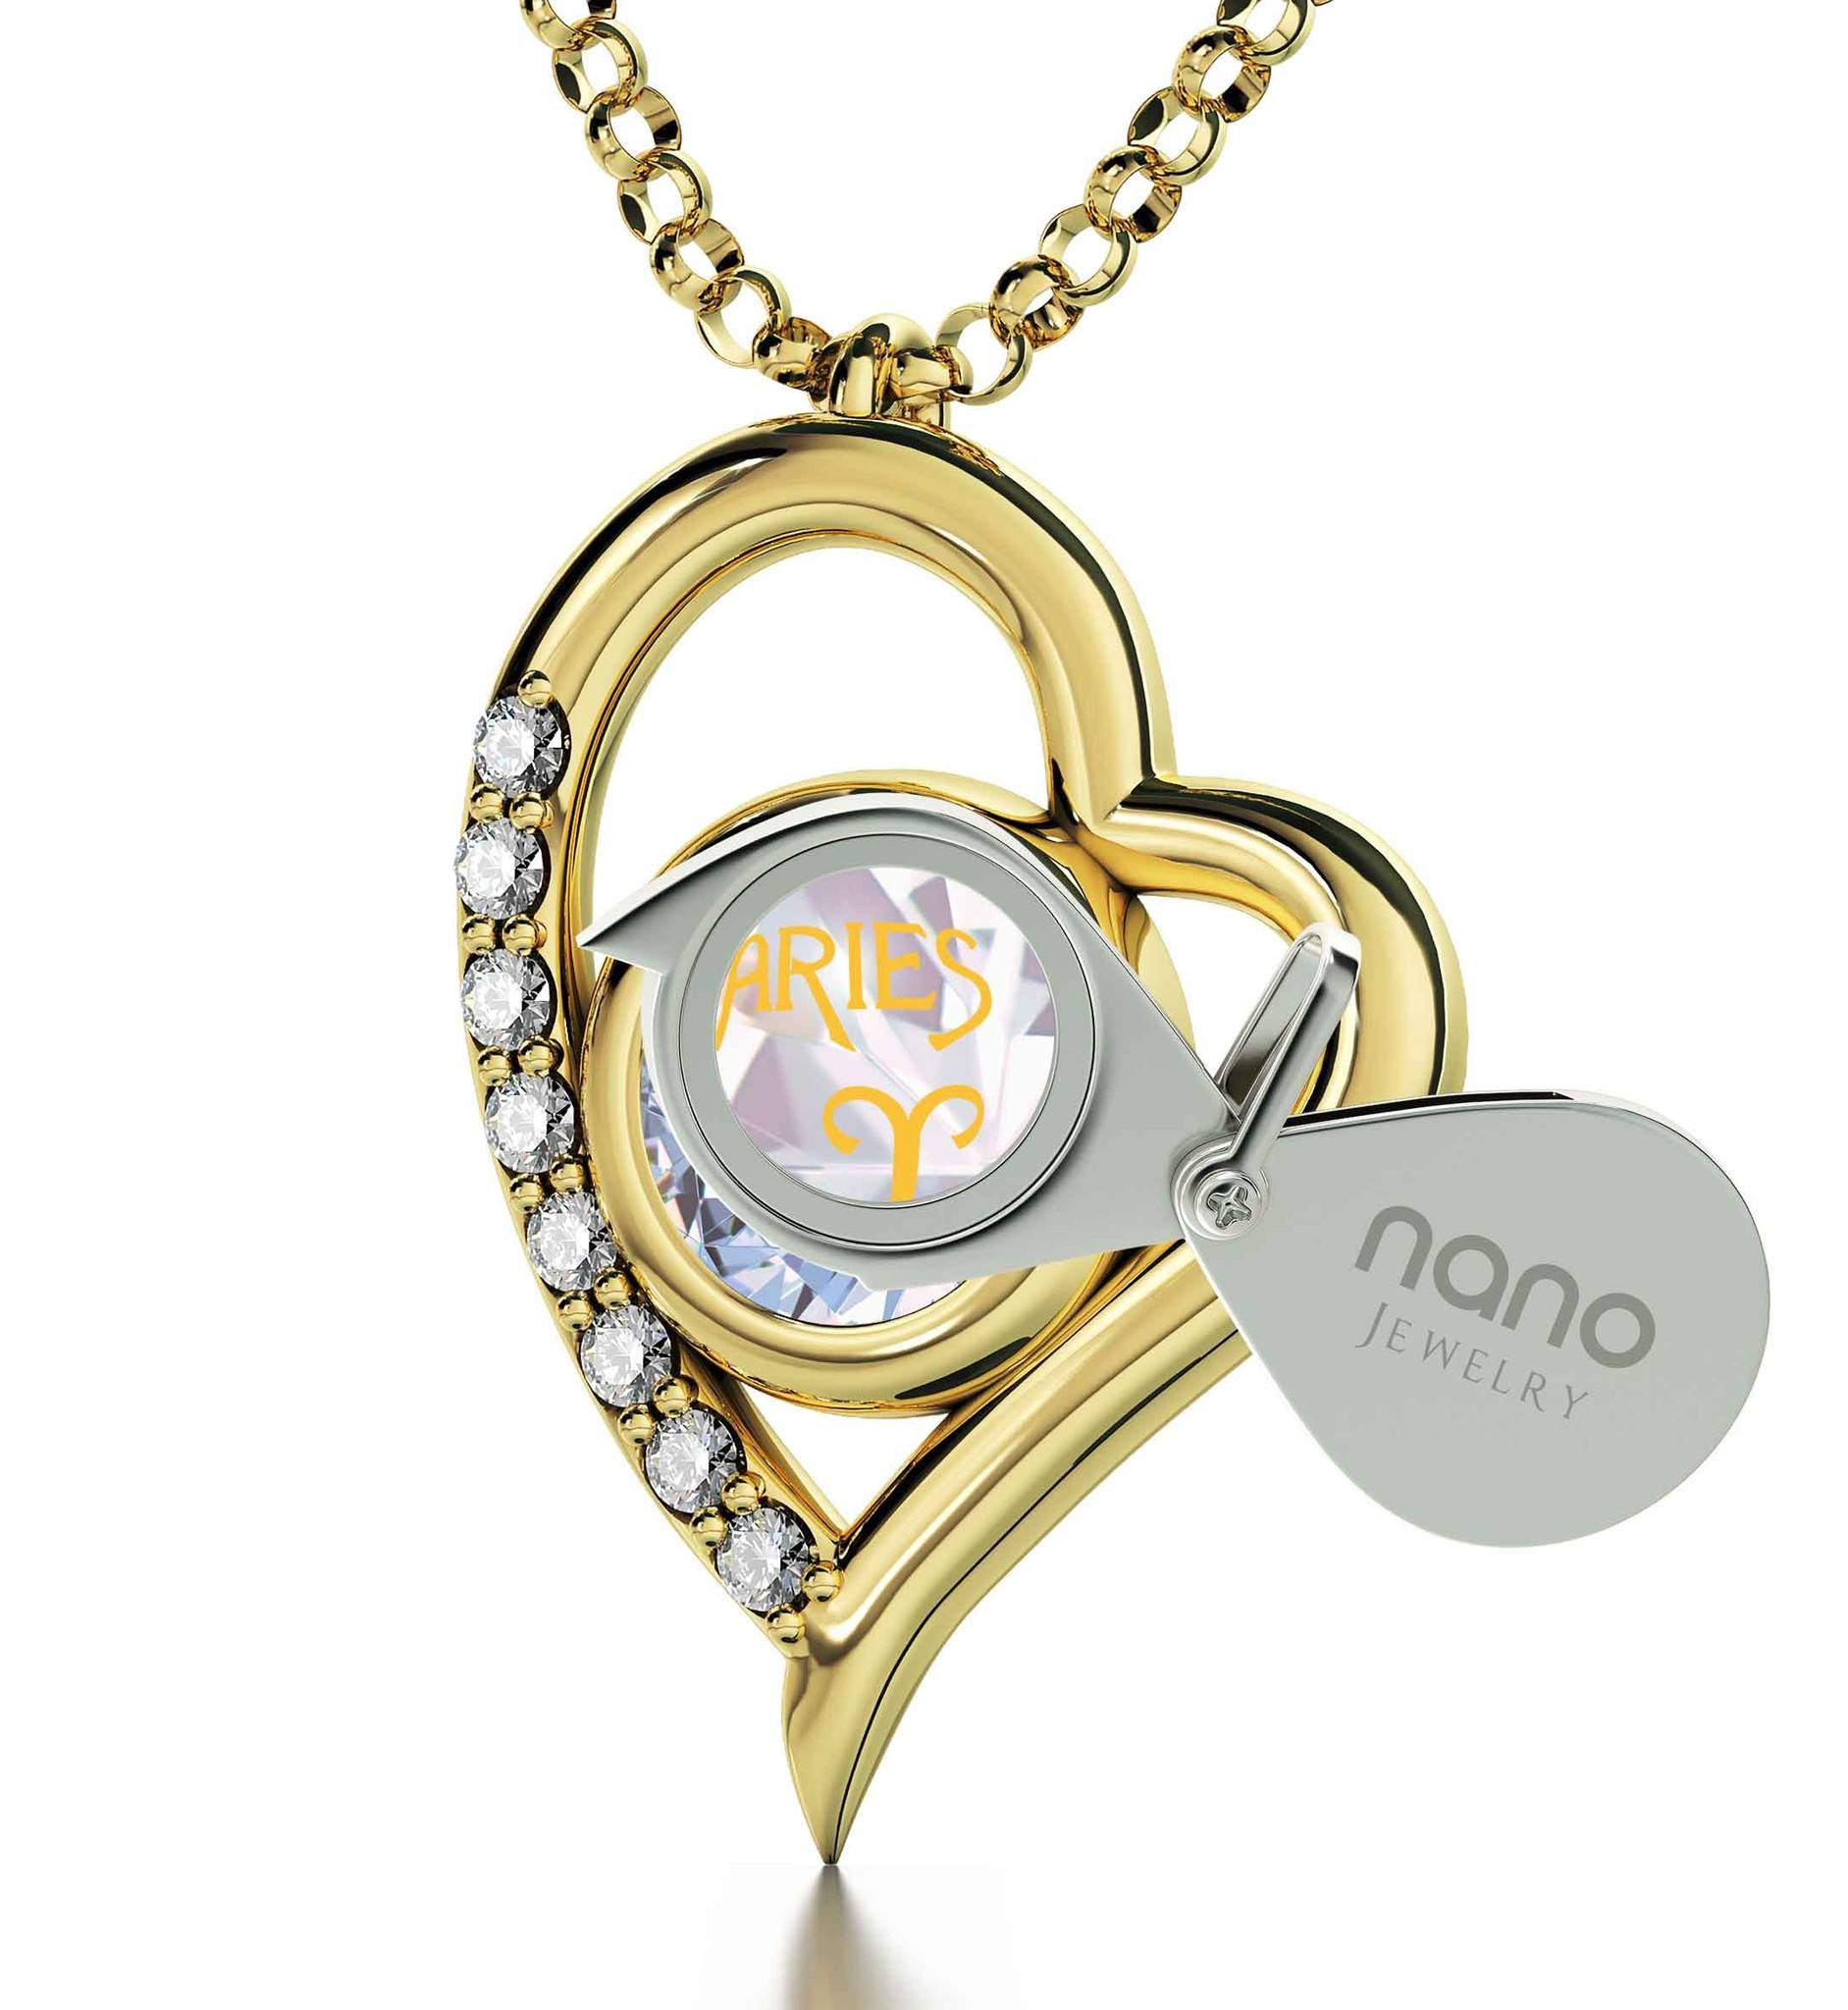 """Zodiac Pendant With 24k Inscription, Womens Gold Chains, Birthstone Necklaces for Mothers, Swarovski Crystal Jewelry """